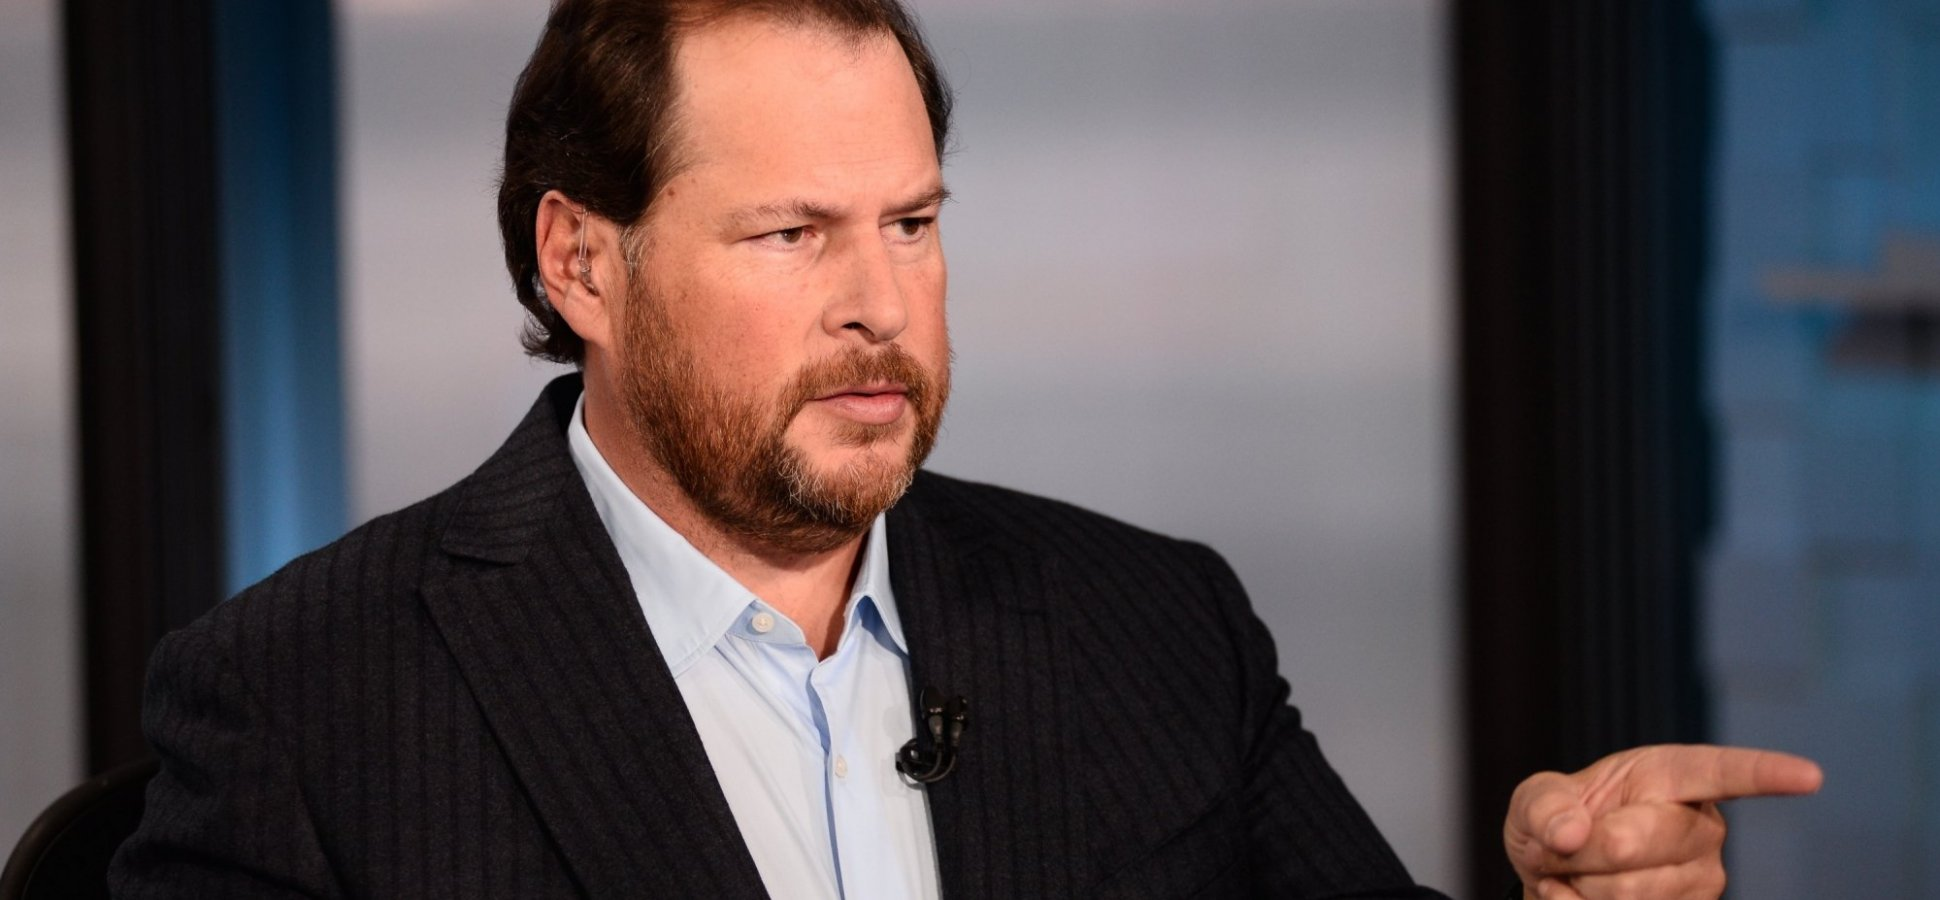 photo My run-in with Marc Benioff, and tips to be a star performer